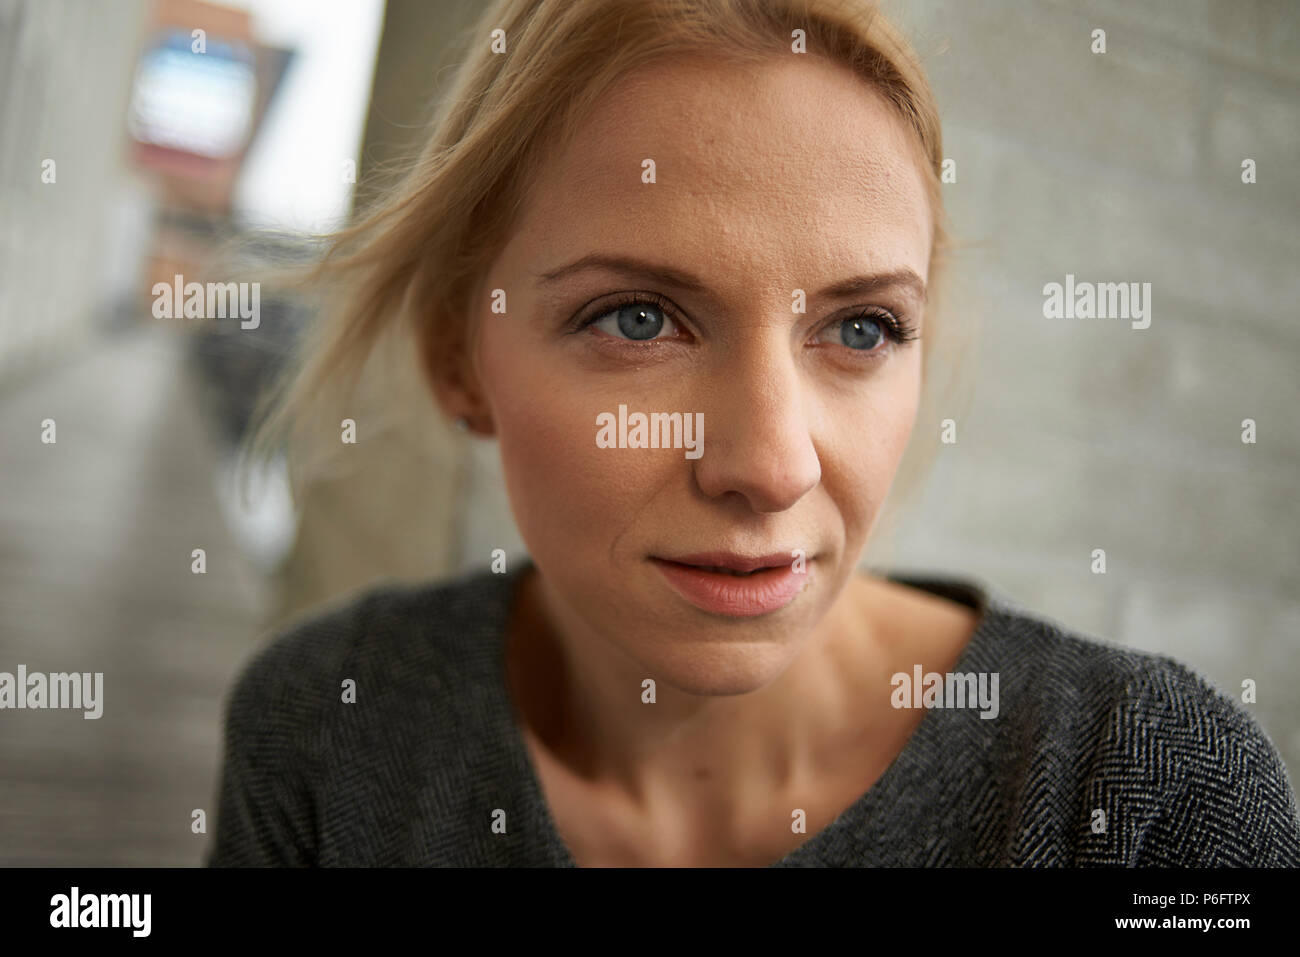 Close up of a young caucasian woman looking anxious and curious as if she is running away from something or someone - Stock Image